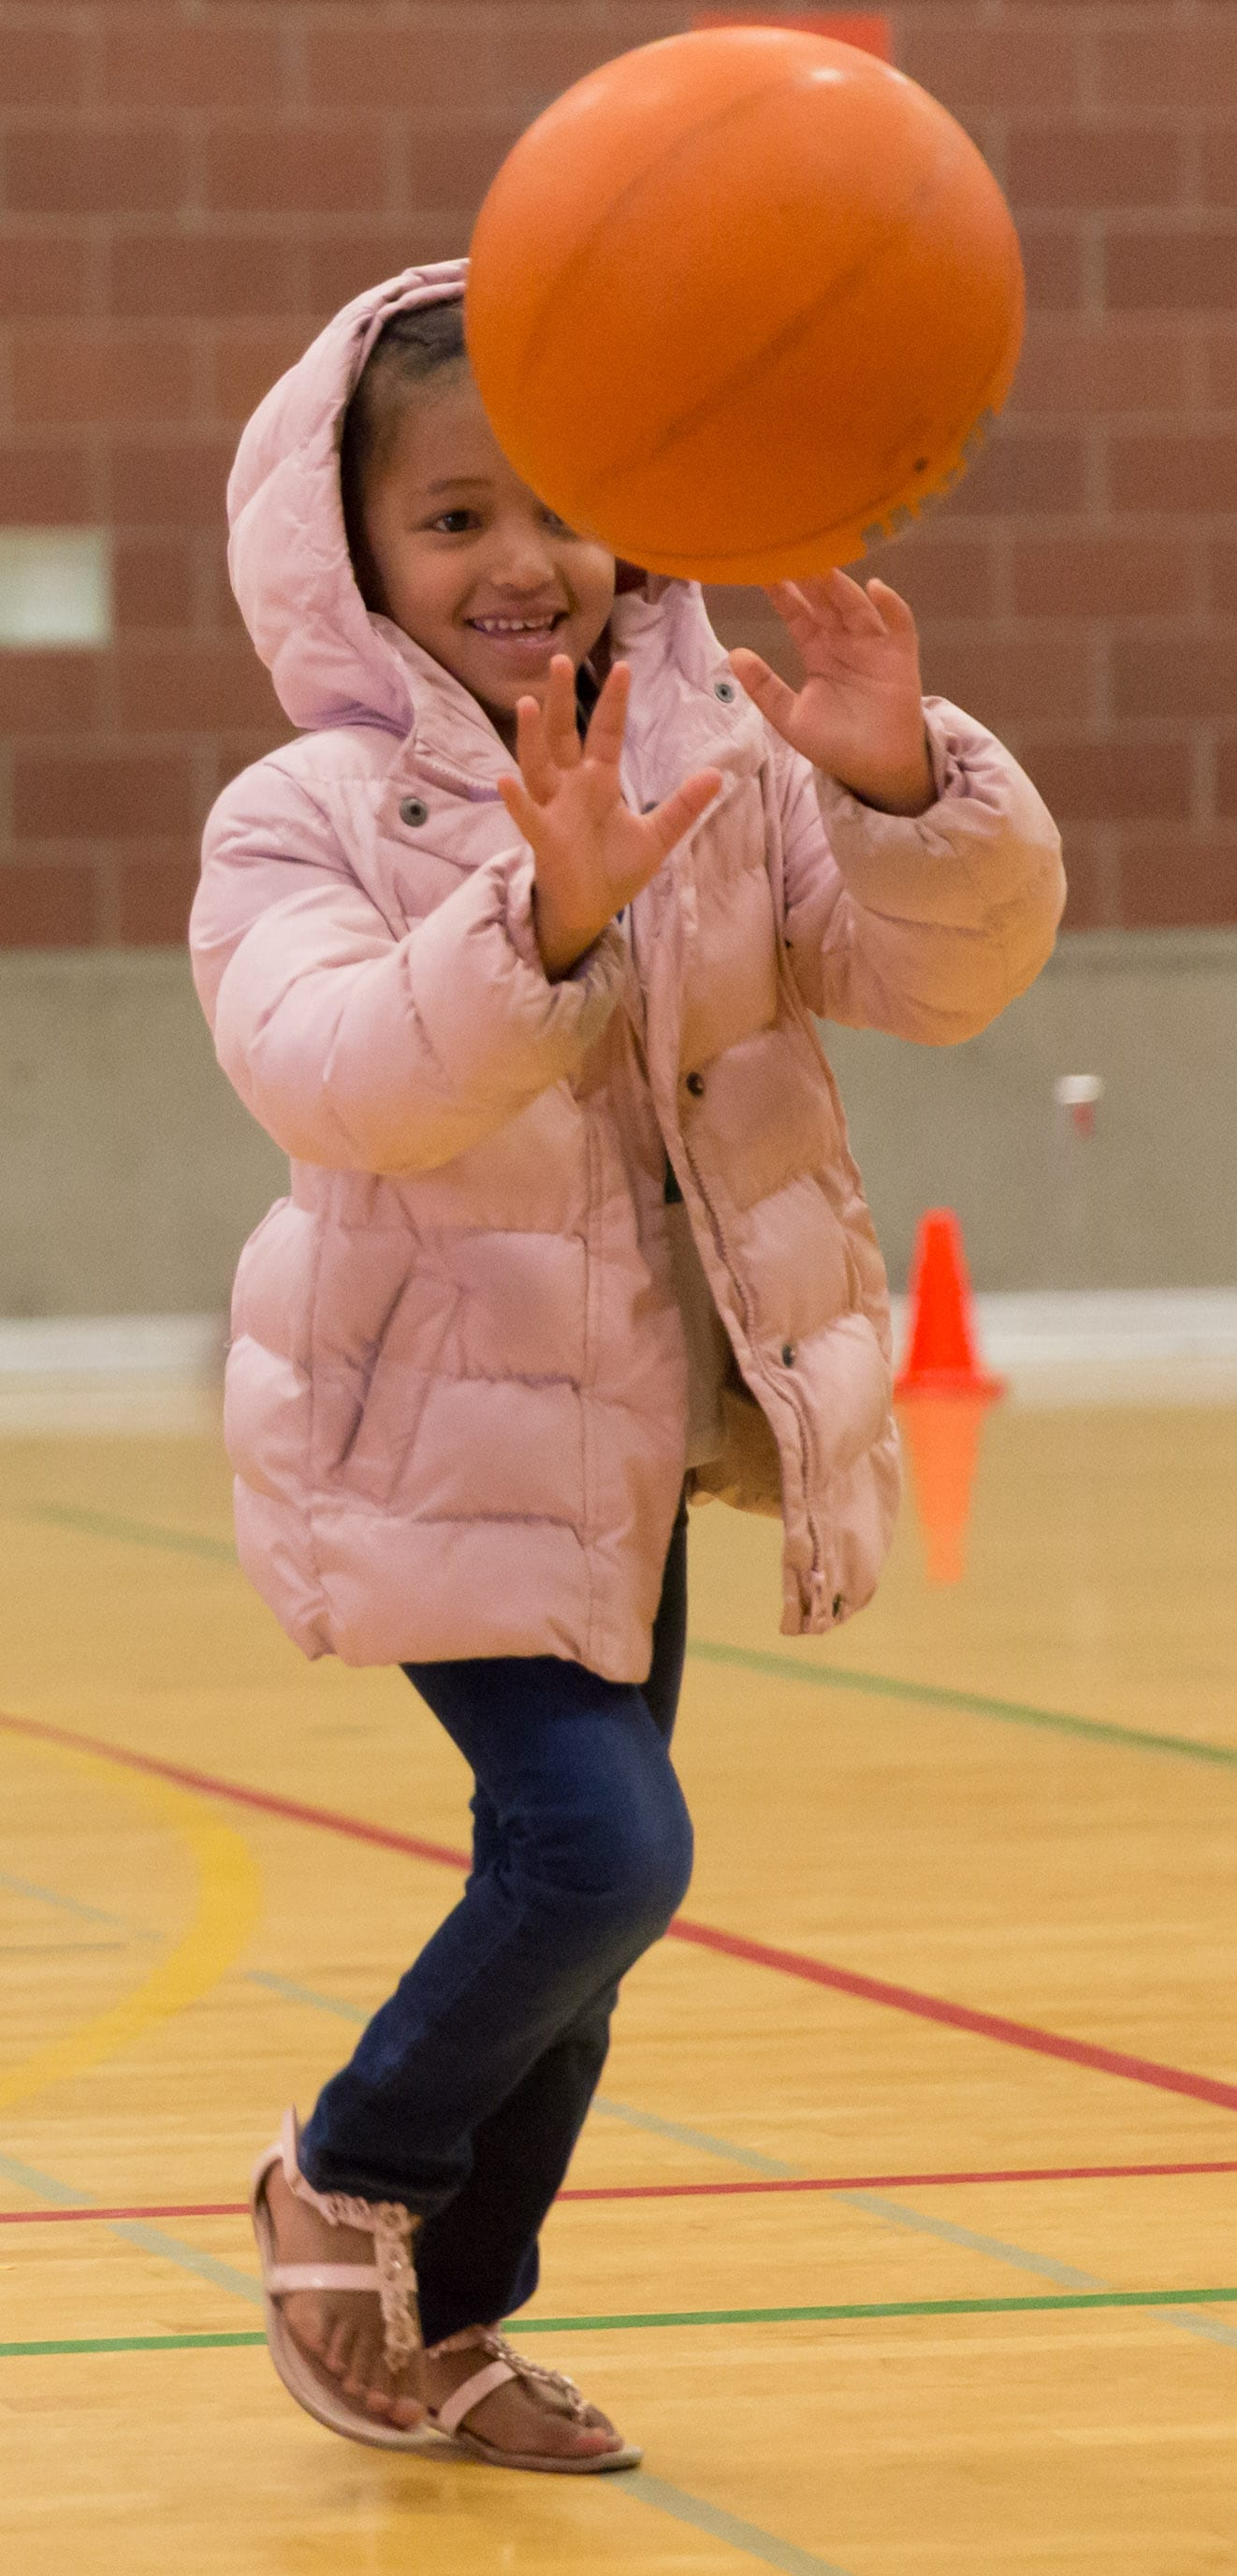 A young player races back to her team during a skills drill. (Neil Enns/Storm Photos)